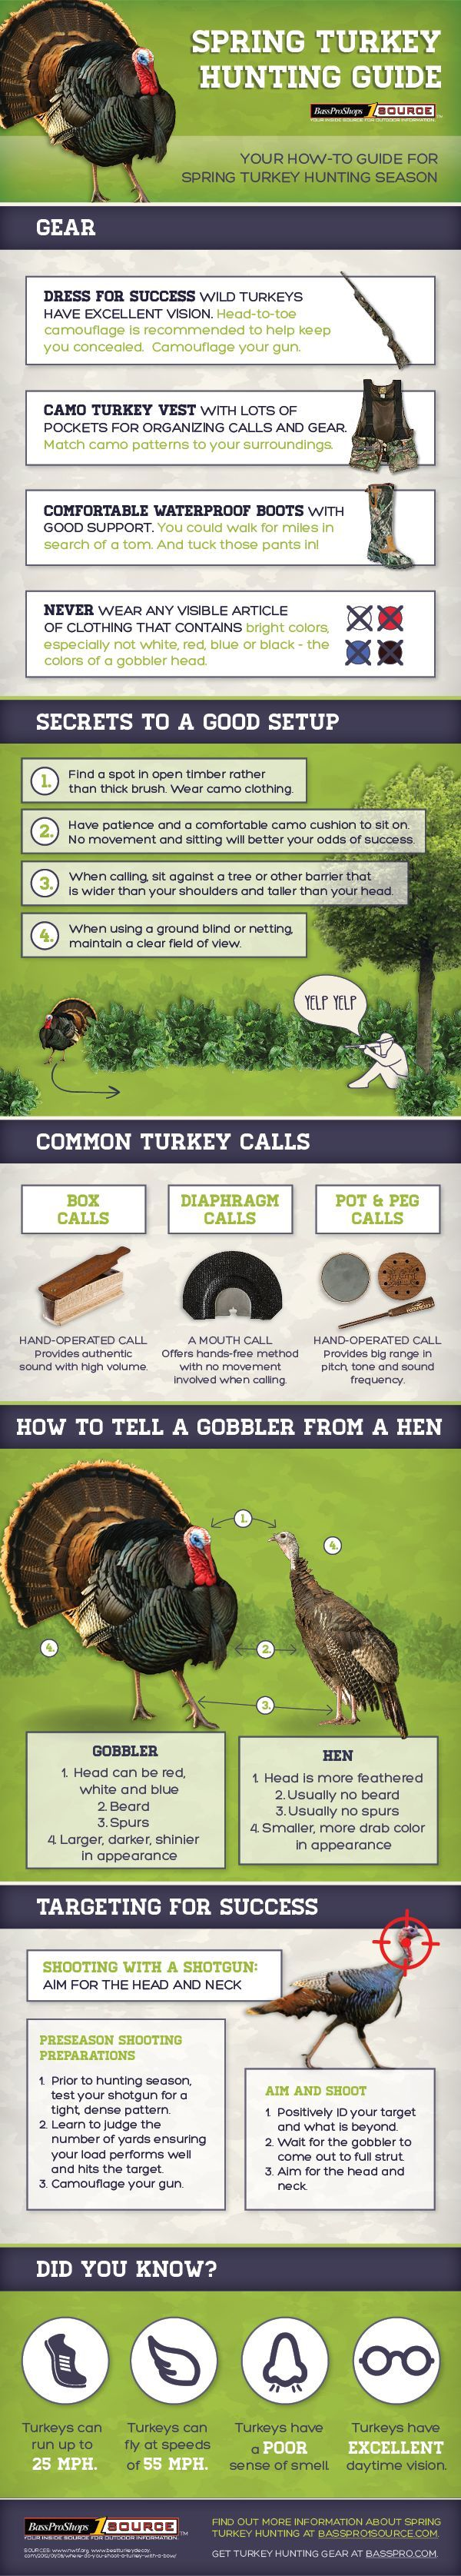 a how to guide to spring turkey hunting infographic  [ 600 x 3350 Pixel ]